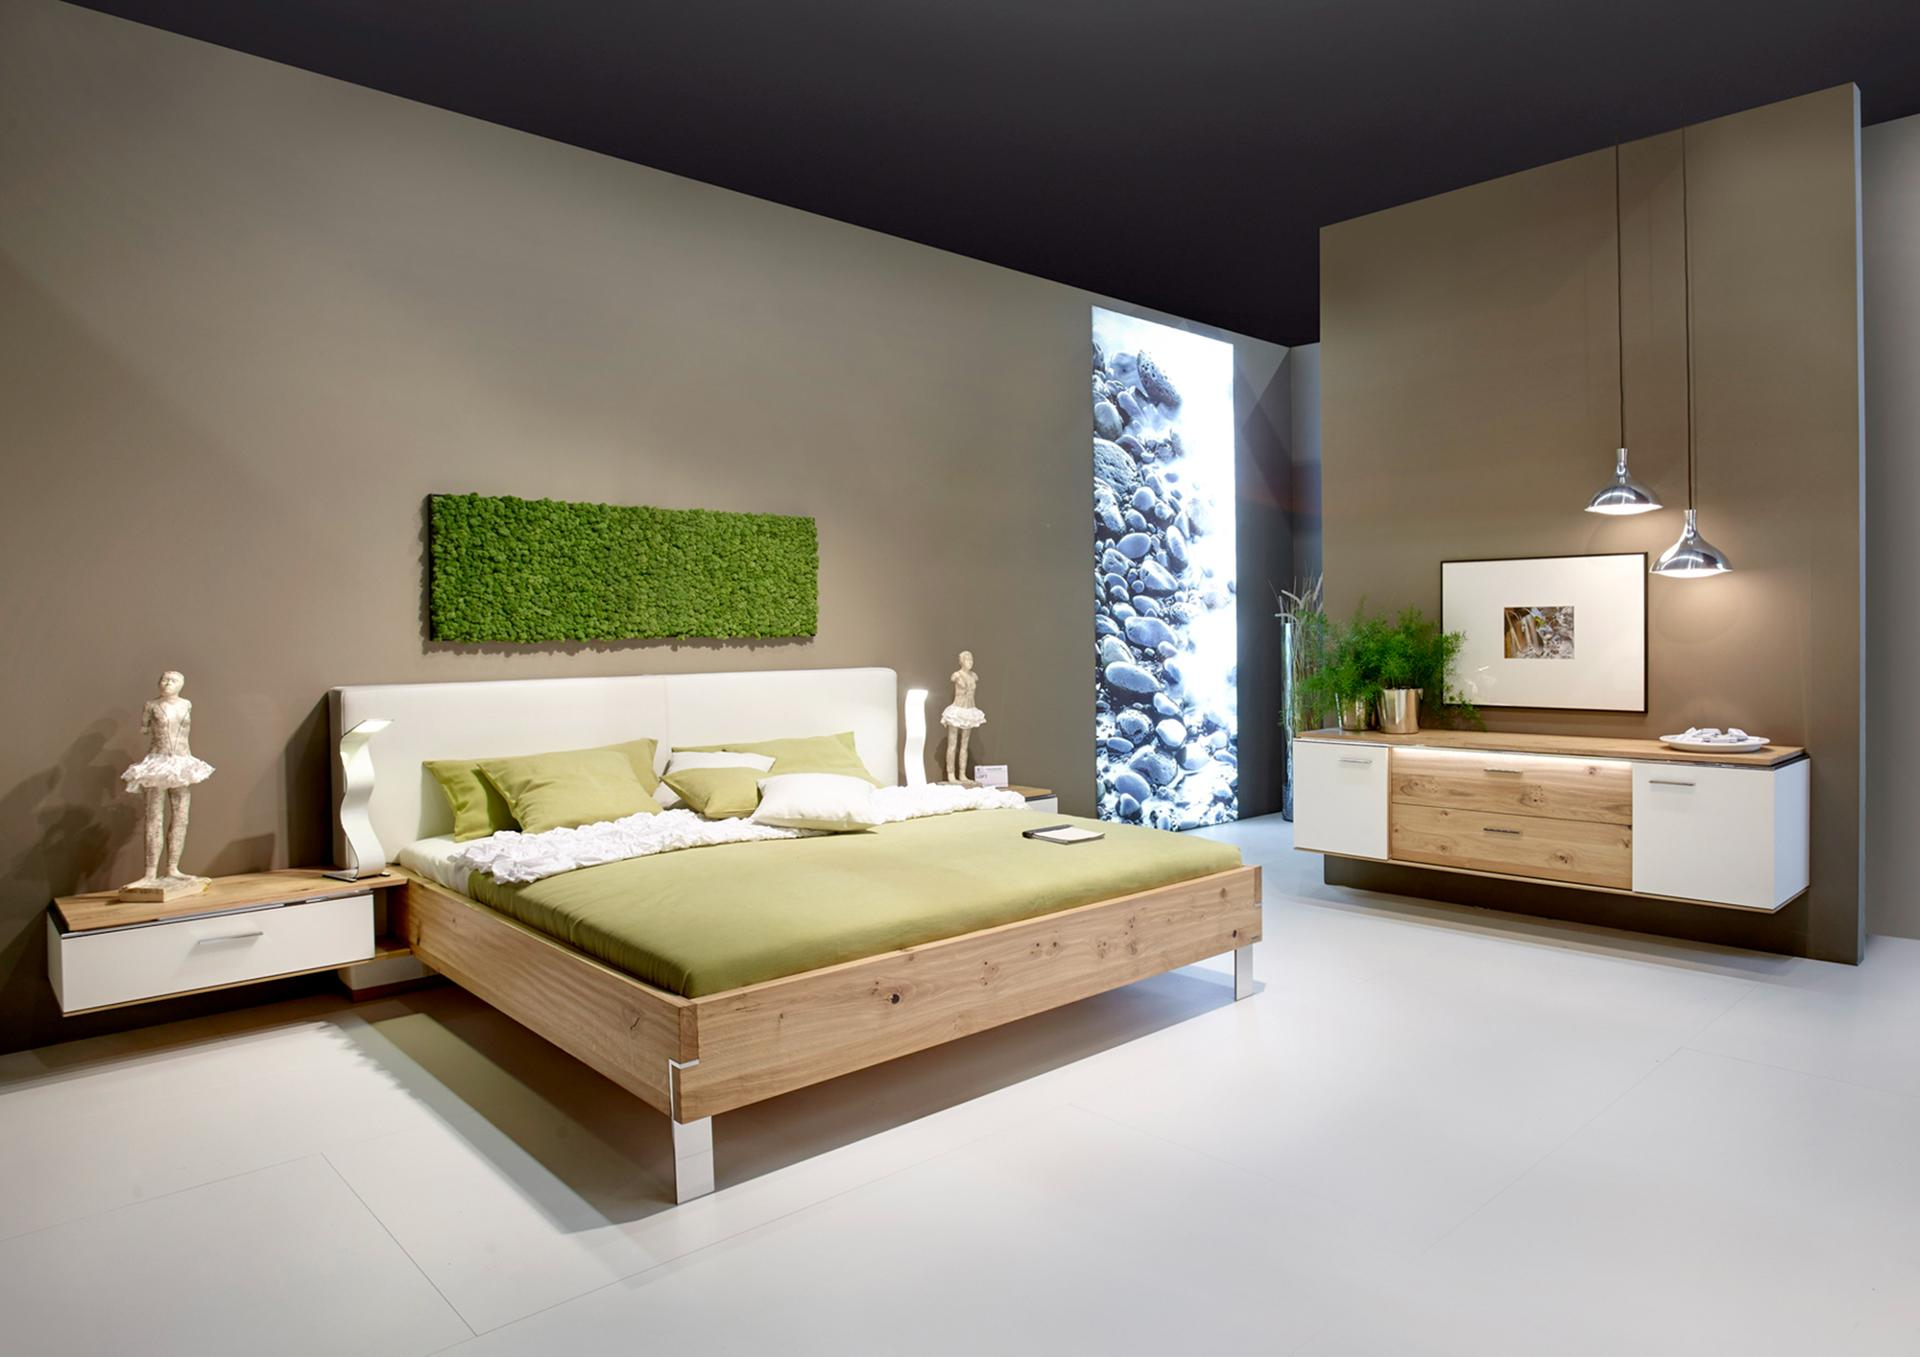 mit farben akzente. Black Bedroom Furniture Sets. Home Design Ideas